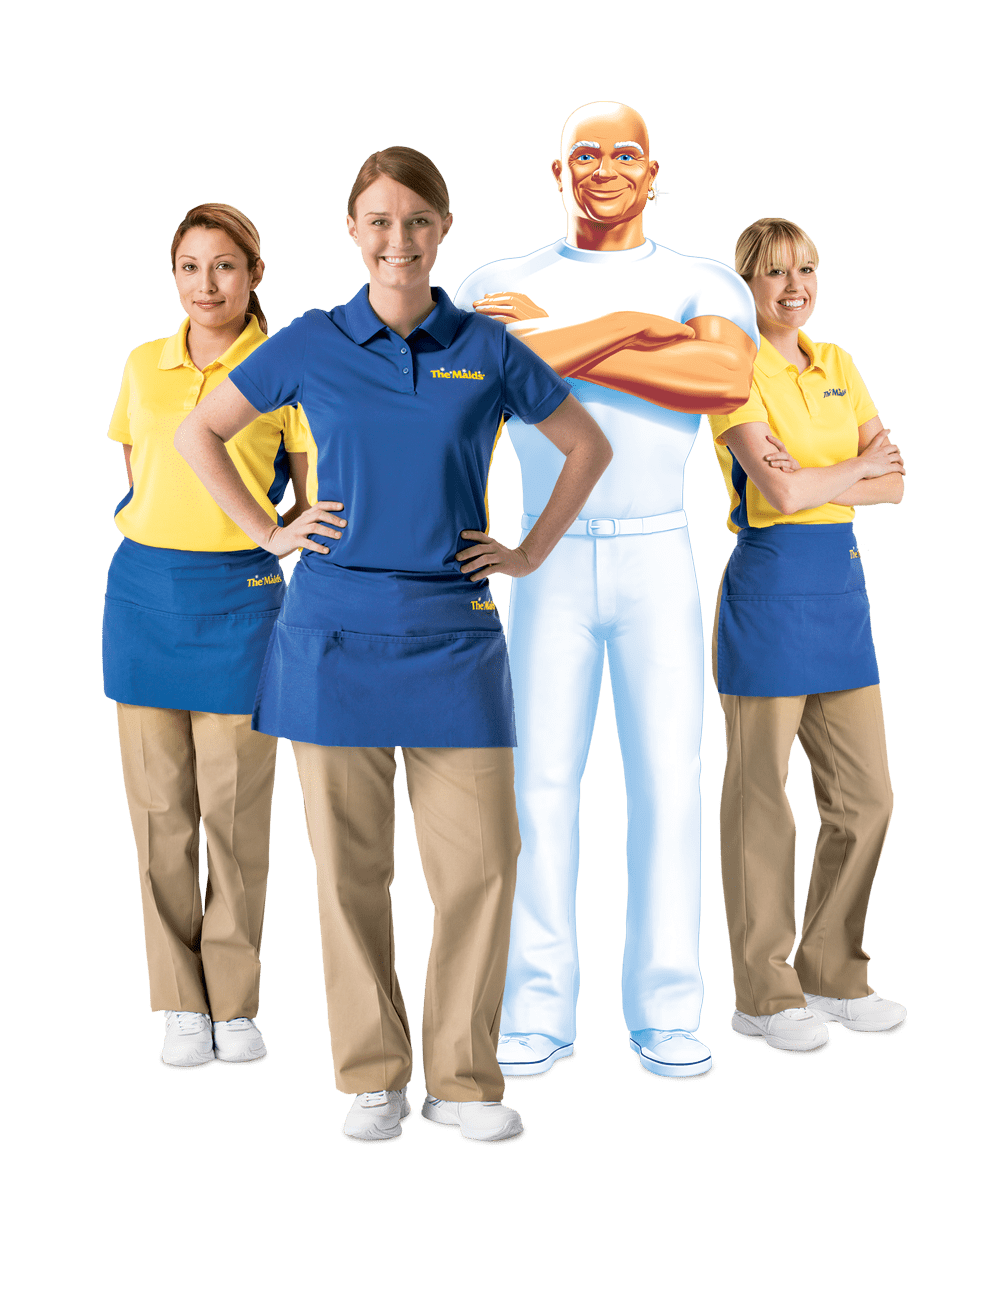 The Maids House Cleaning - The Maids in Baton Rouge Home Cleaning